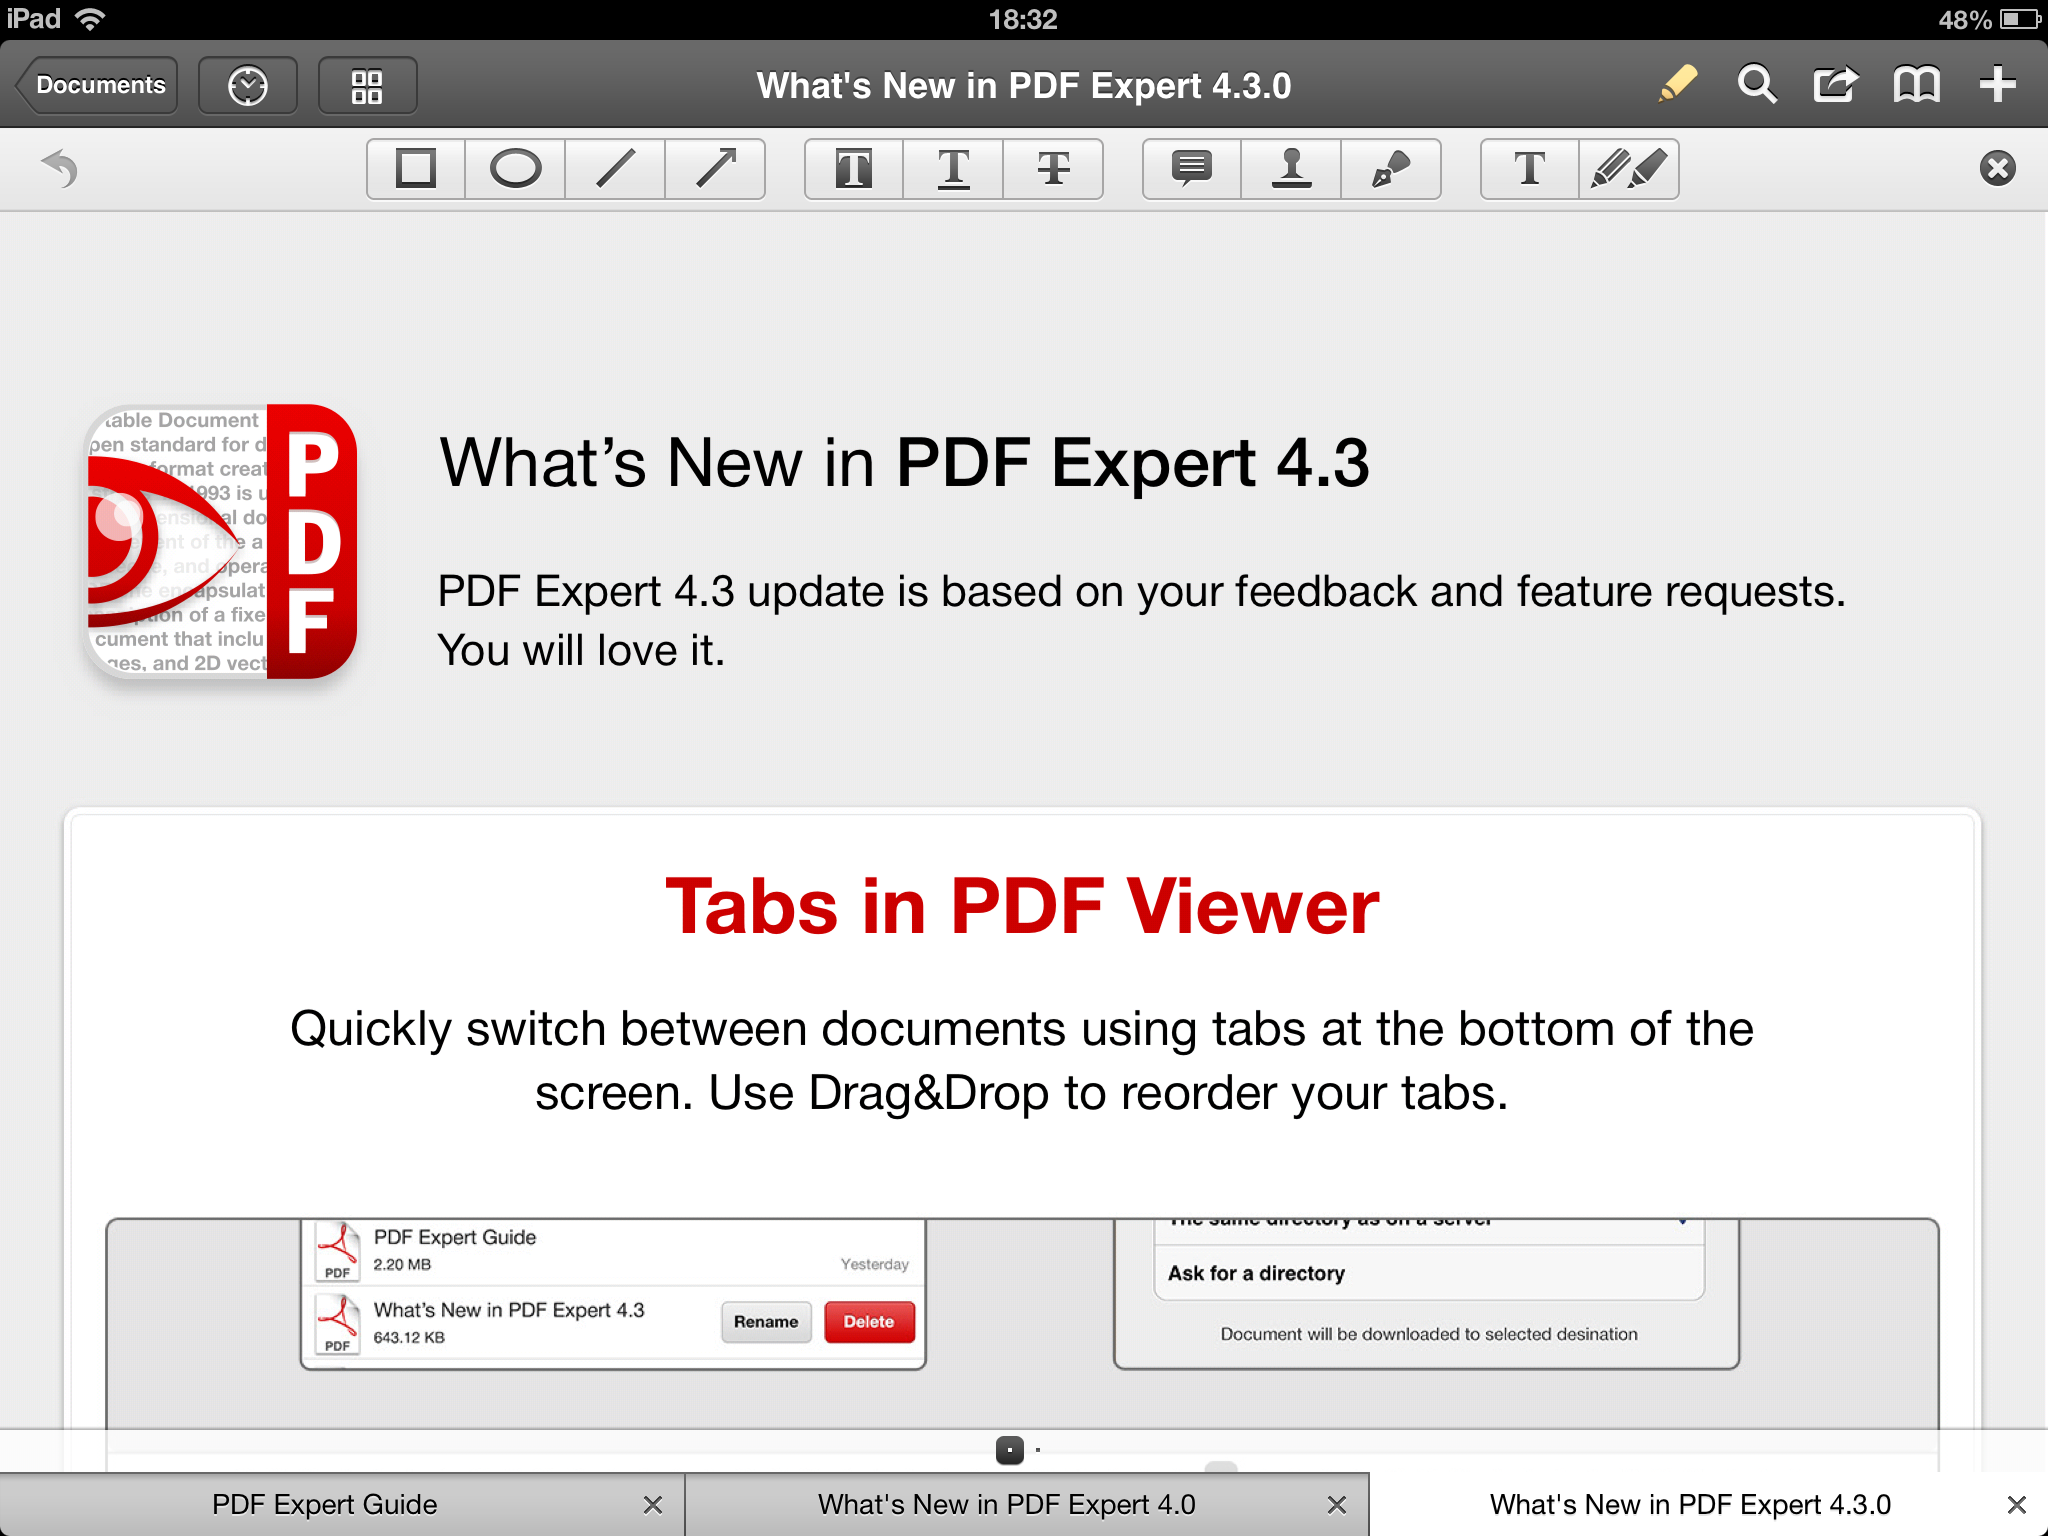 Become A Productivity Expert With The New Tabbed PDF Viewer In PDF Expert For iPad